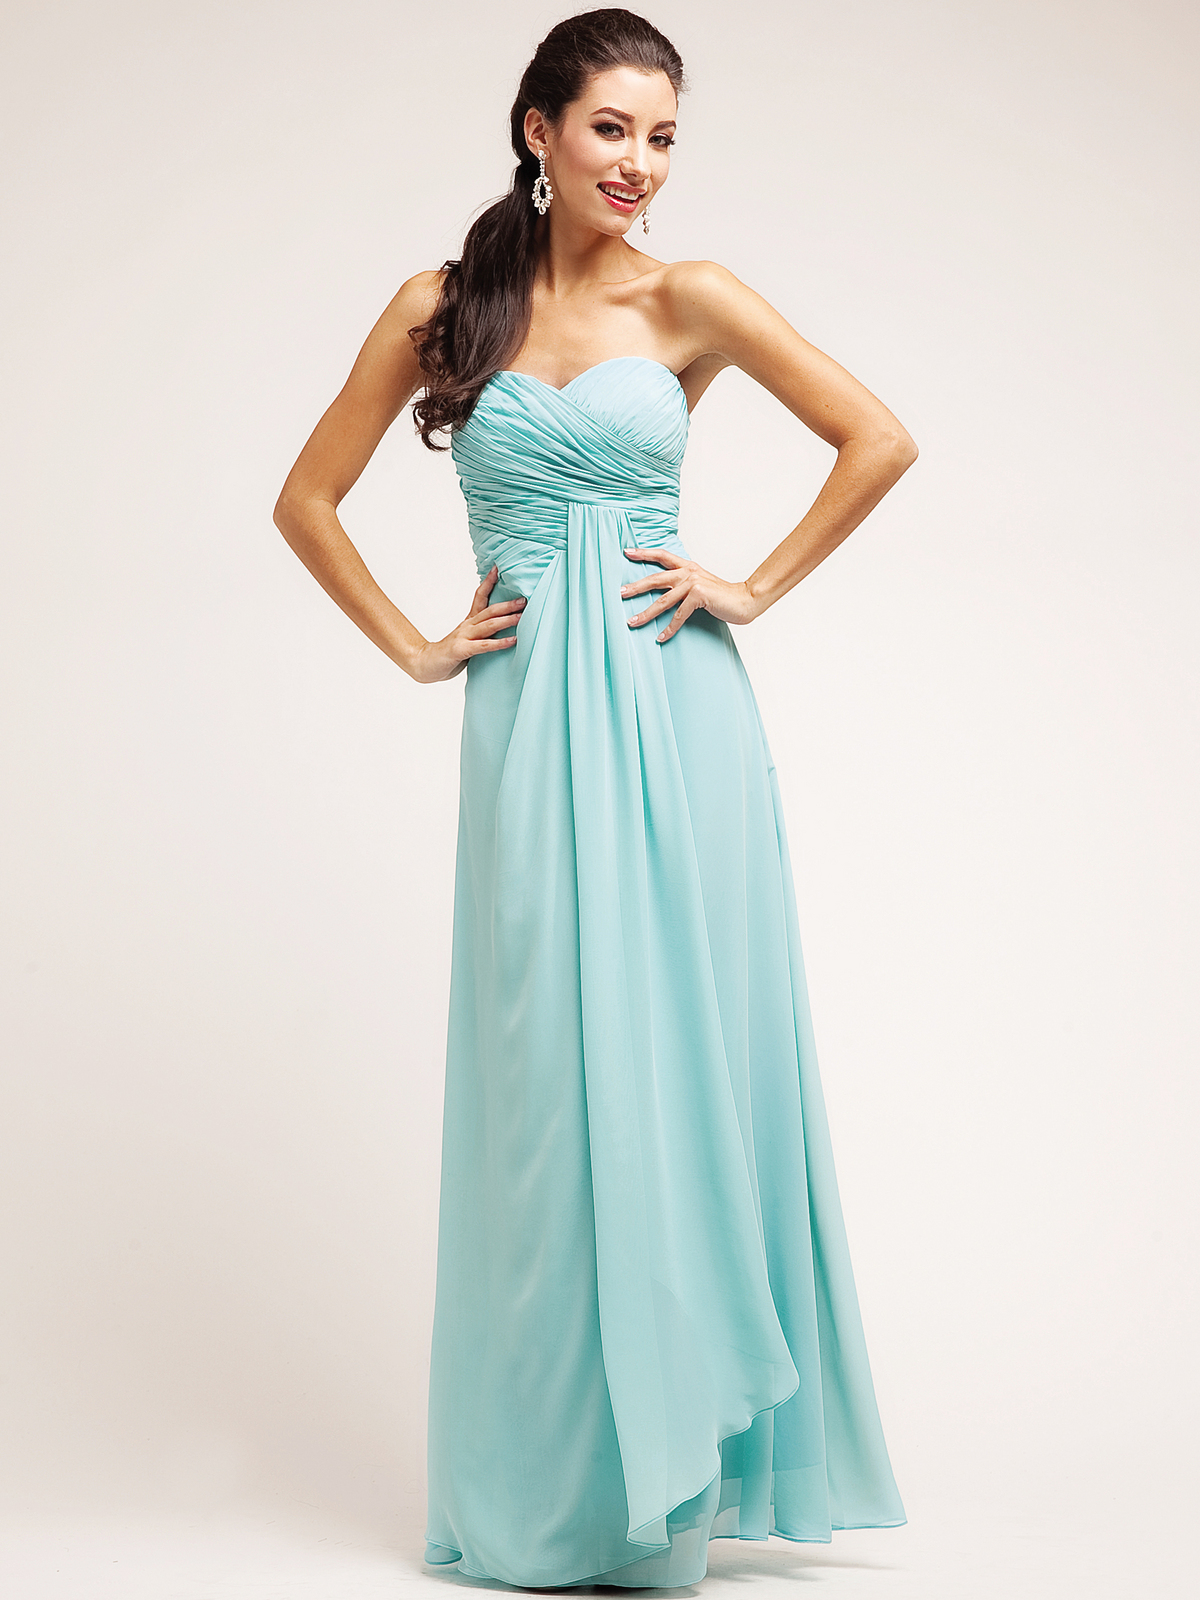 Strapless Sweetheart Wrap Top Formal Dress | Sung Boutique L.A.